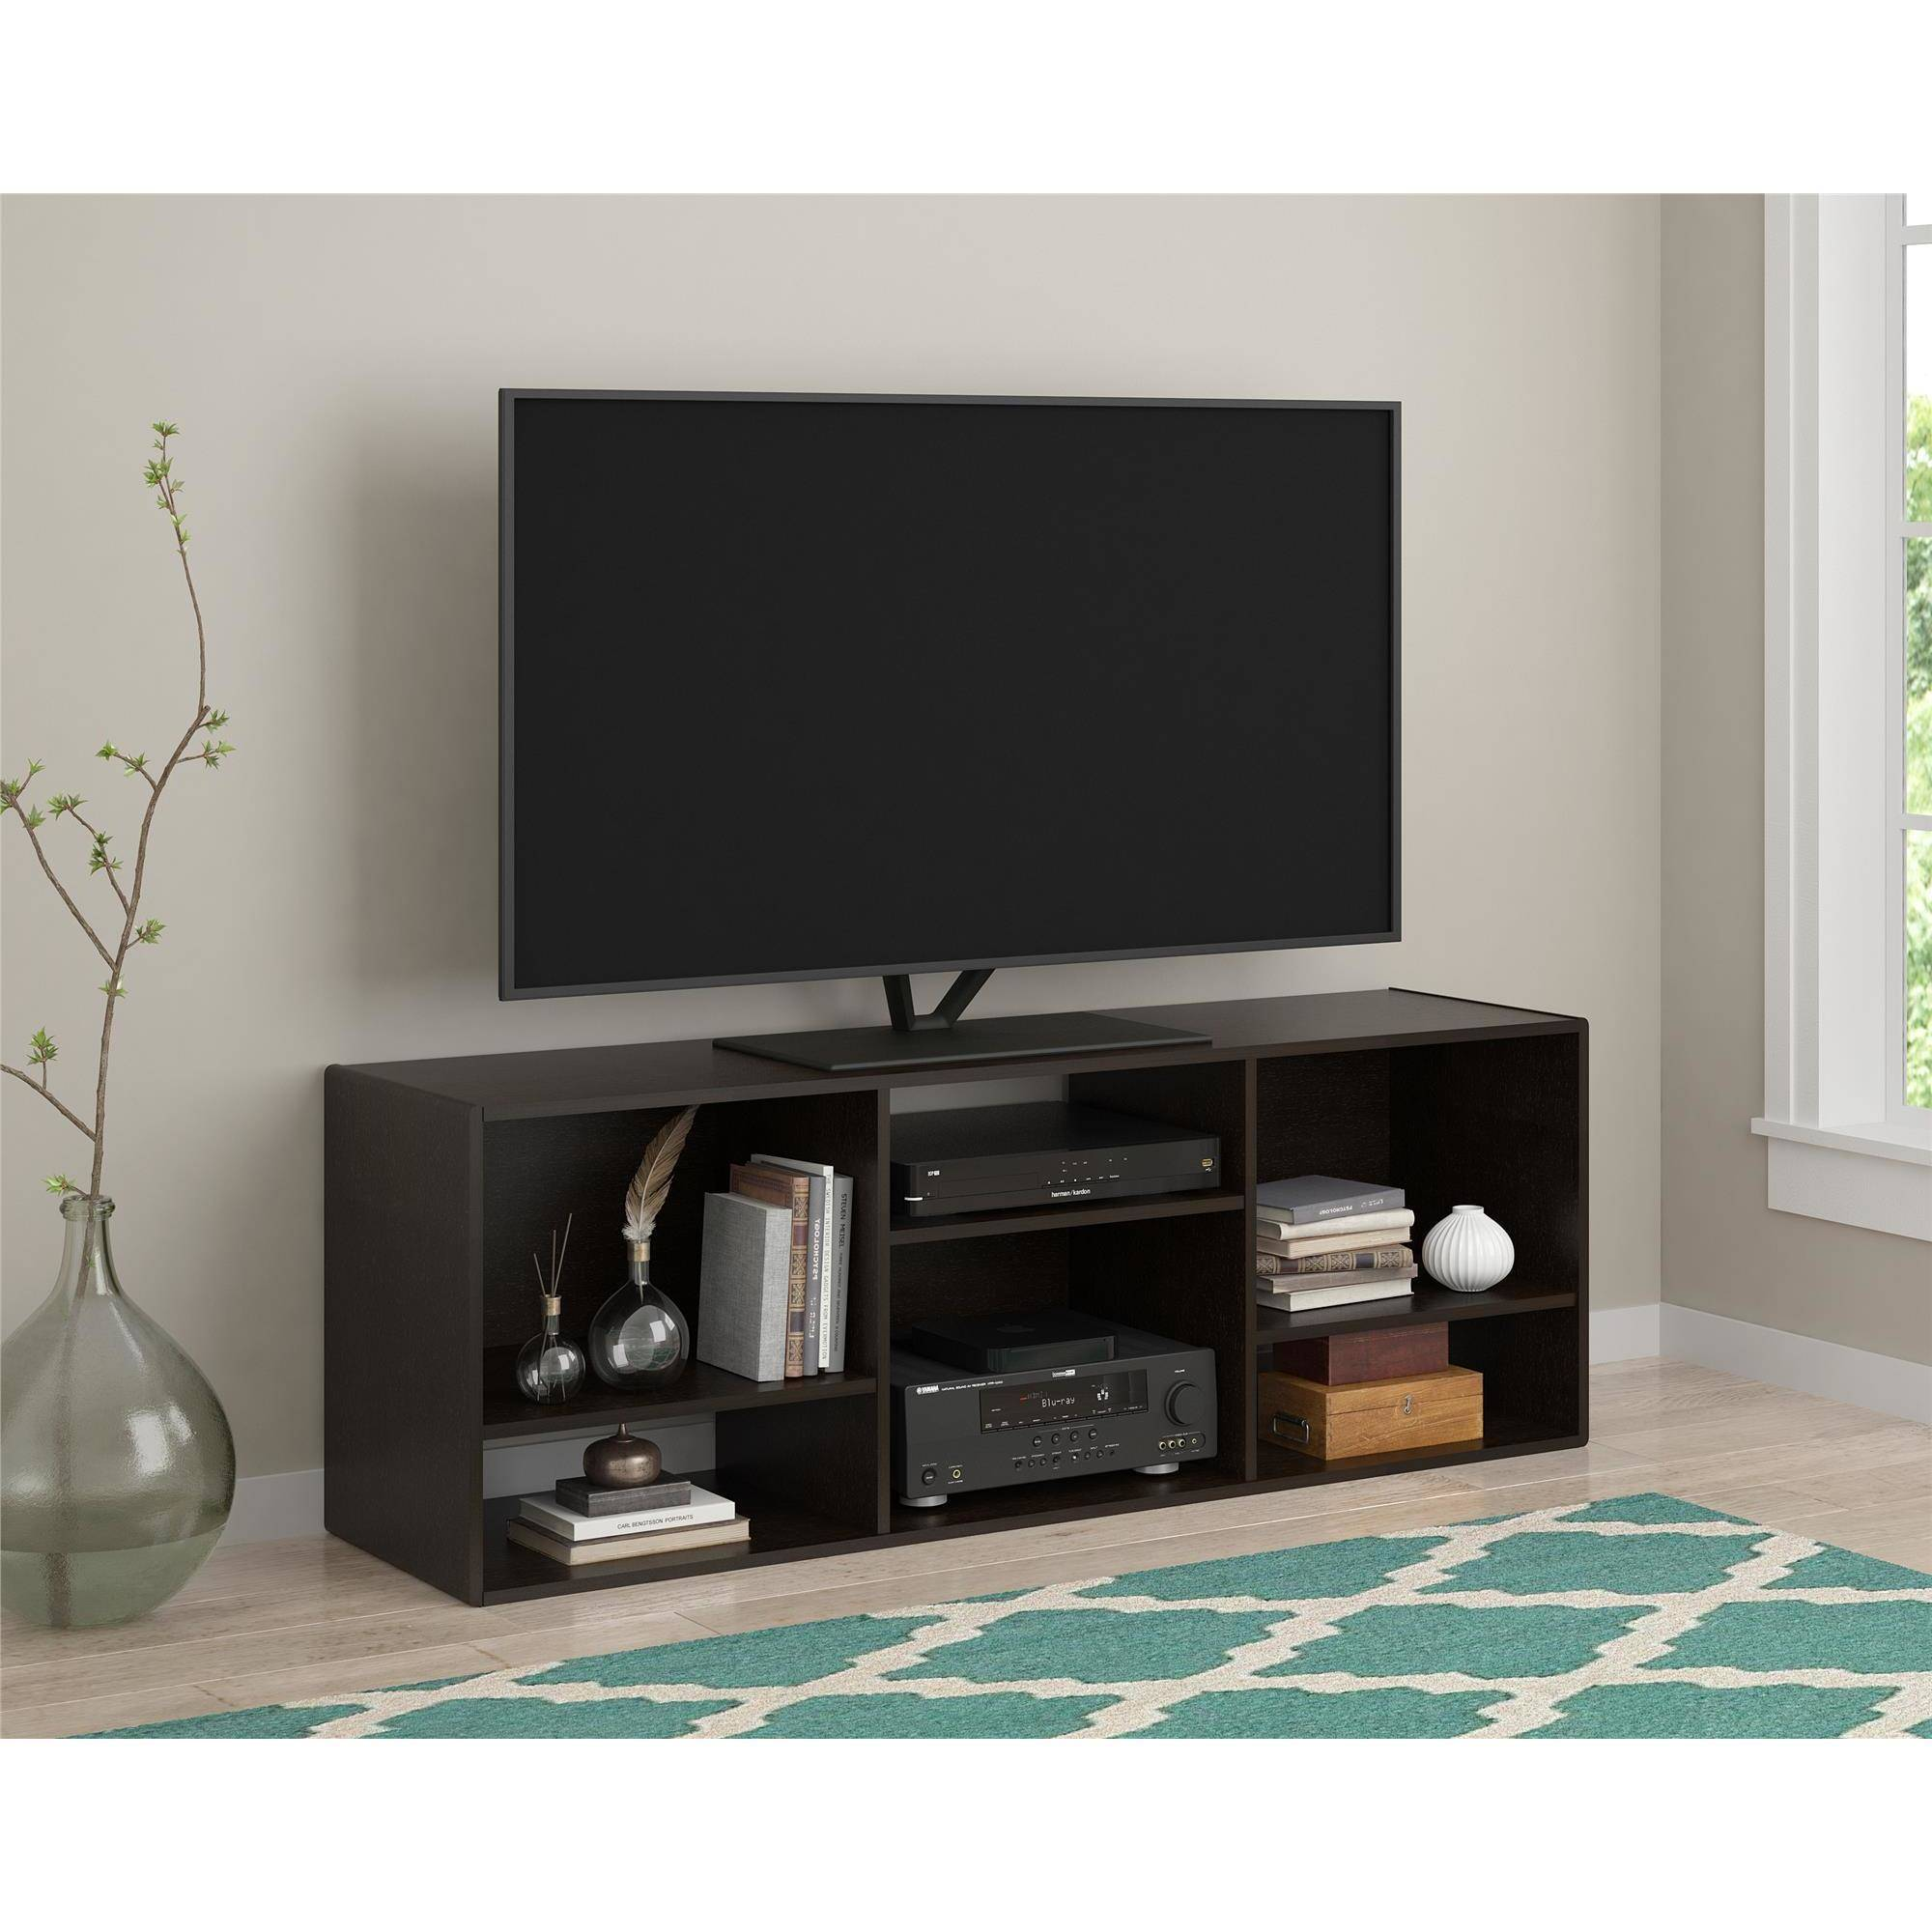 "TV Stand or Shelving Unit for TVs up to 55"", Espresso"